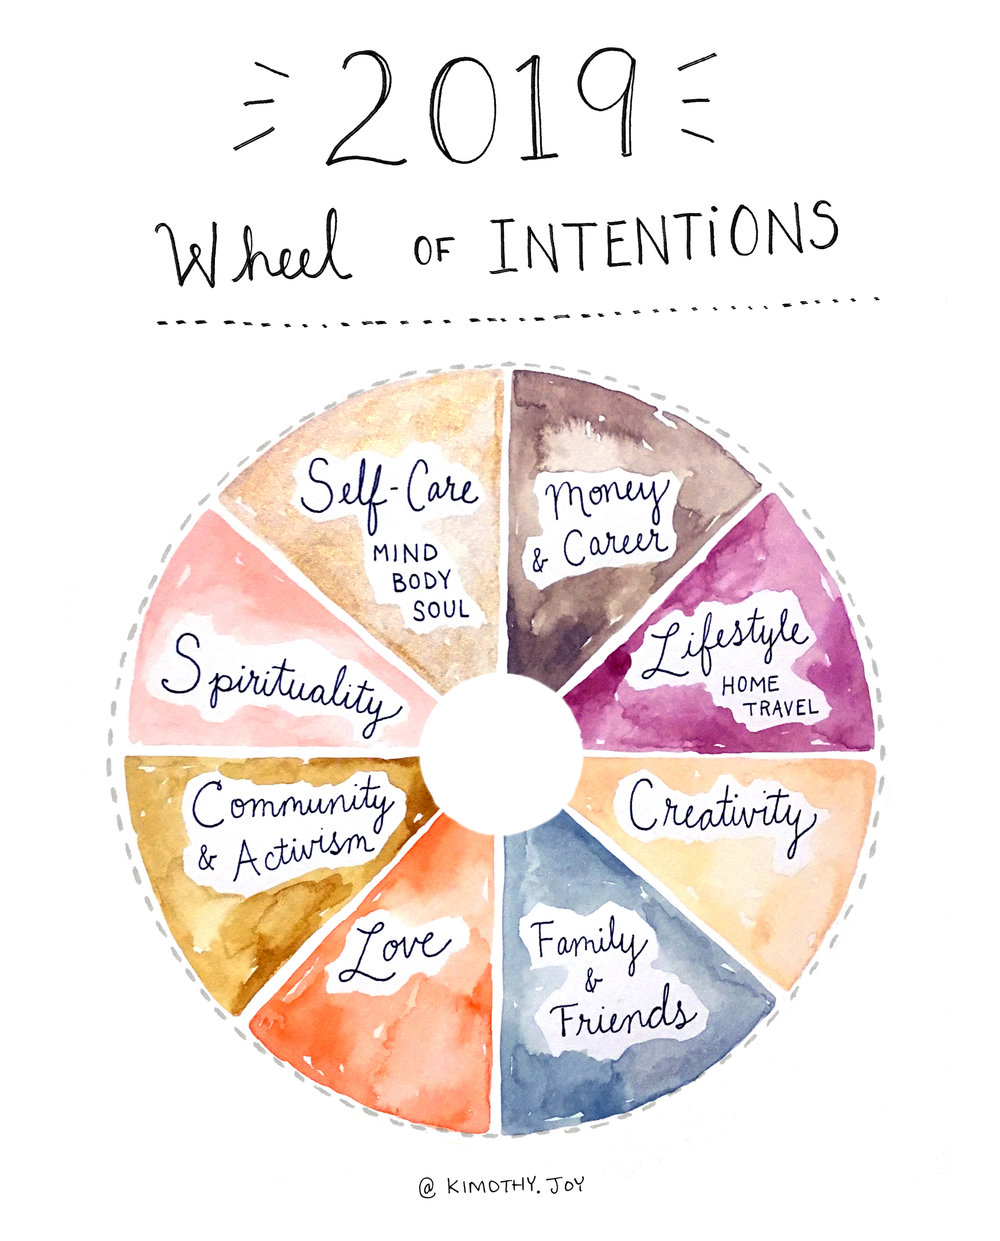 Sign up belowto download - Complete your own 2019 Wheel of Intentions. Instructions included.